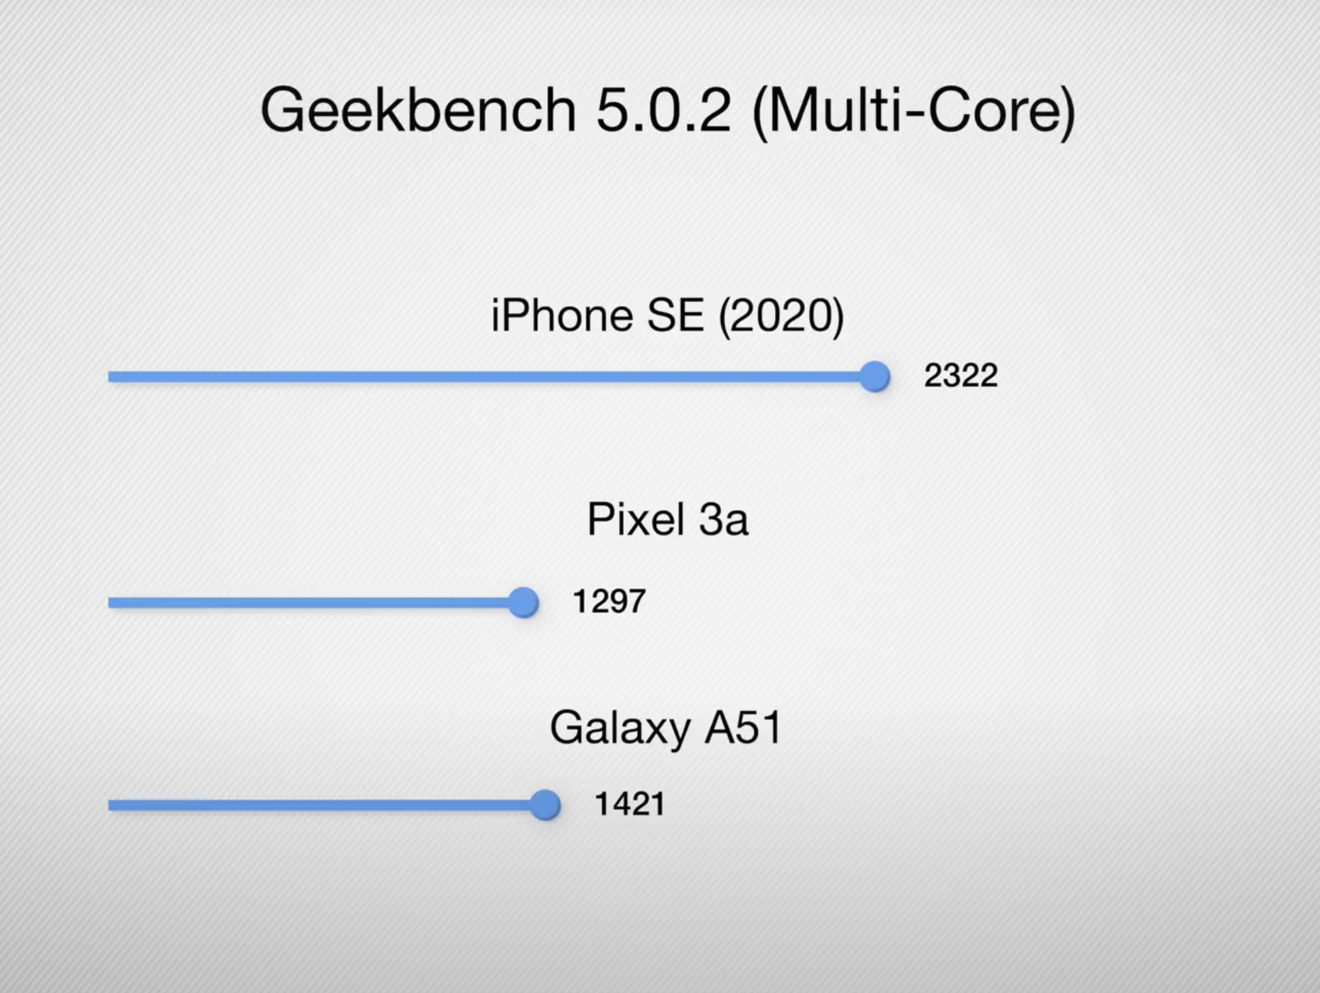 Multi-core Geekbench 5.0.2 results for Galaxy A51, iPhone SE, and Pixel 3a